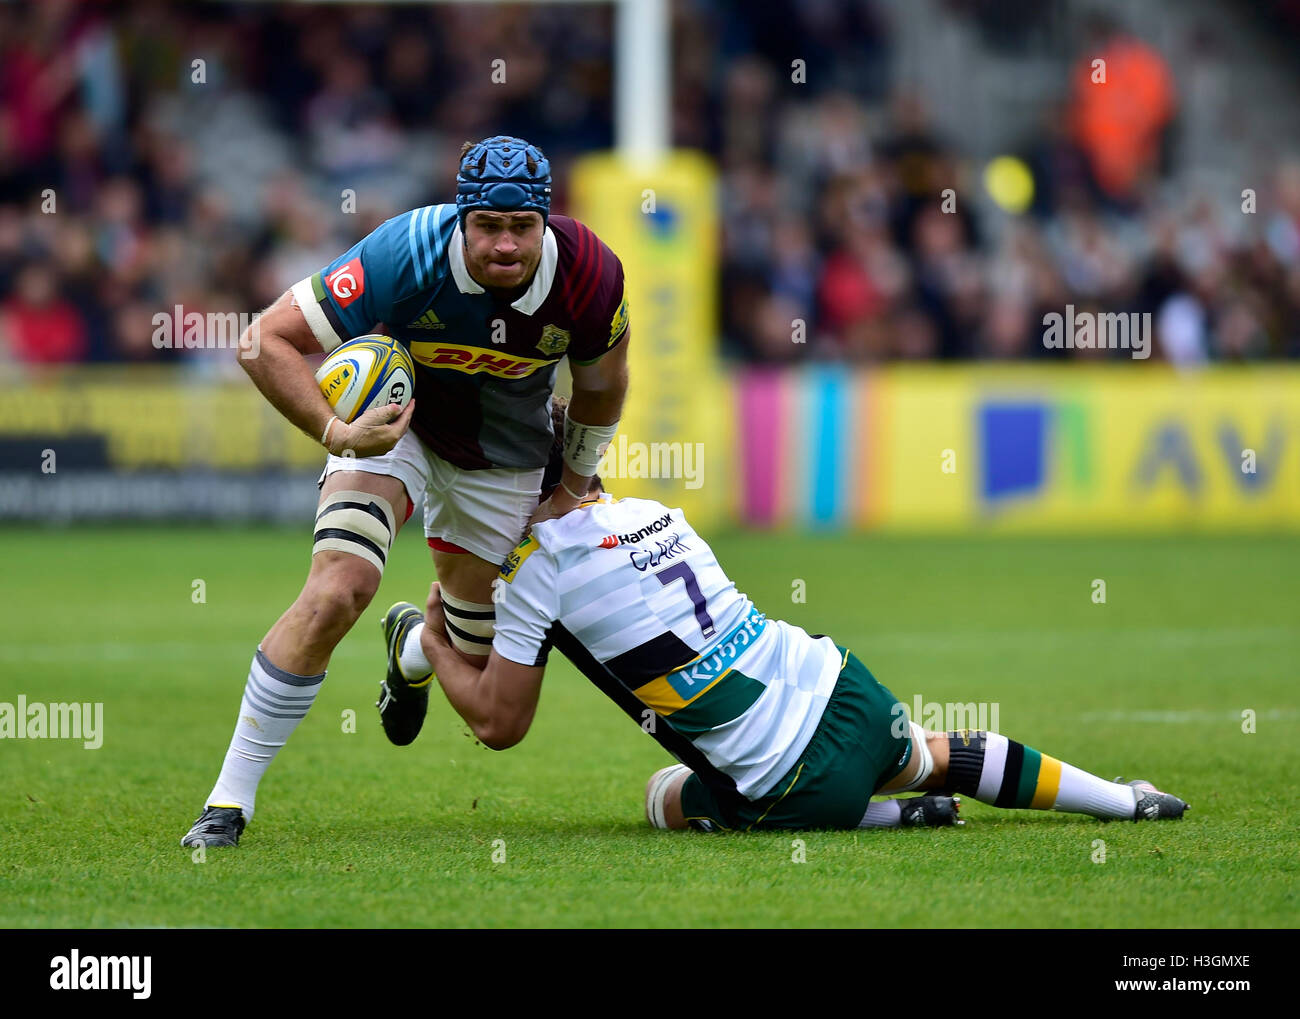 London, UK. 8th October, 2016. James Horwill (c) of Harlequins was tackled during Aviva Premiership Rugby game between Stock Foto